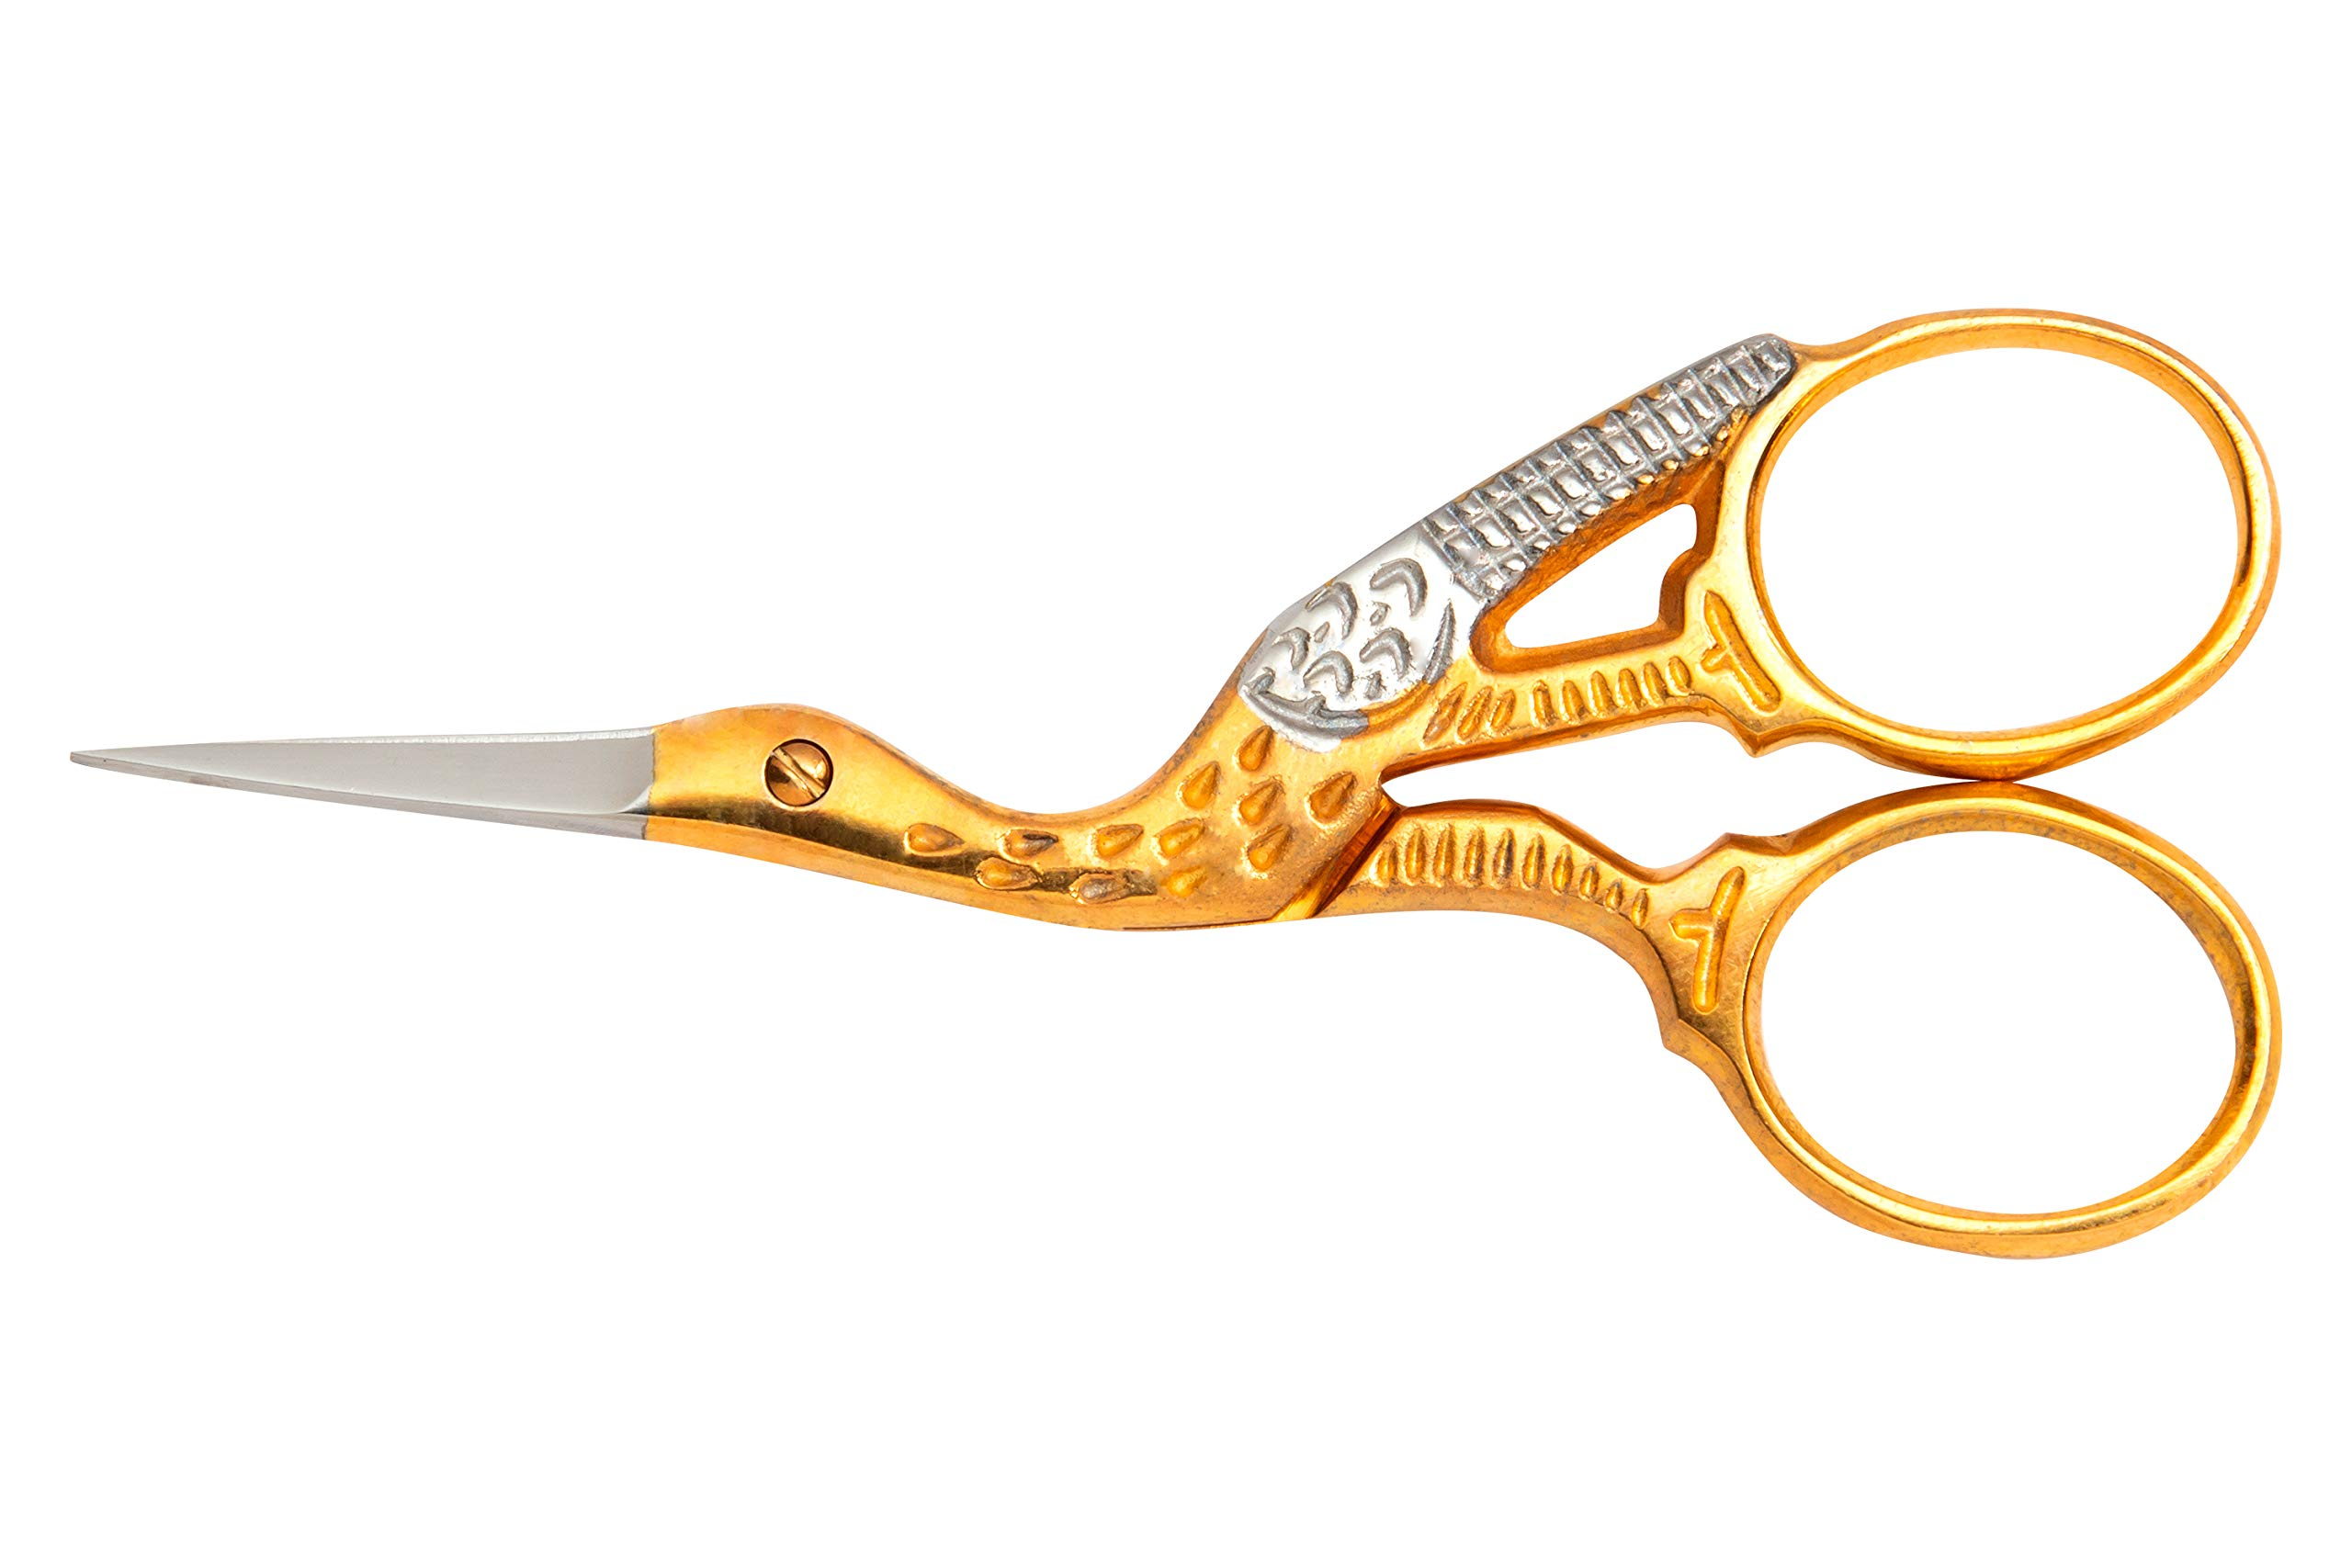 Mundial 3-1/2-Inch Classic Forged Stork Embroidery Scissors, Gold Plated Finish